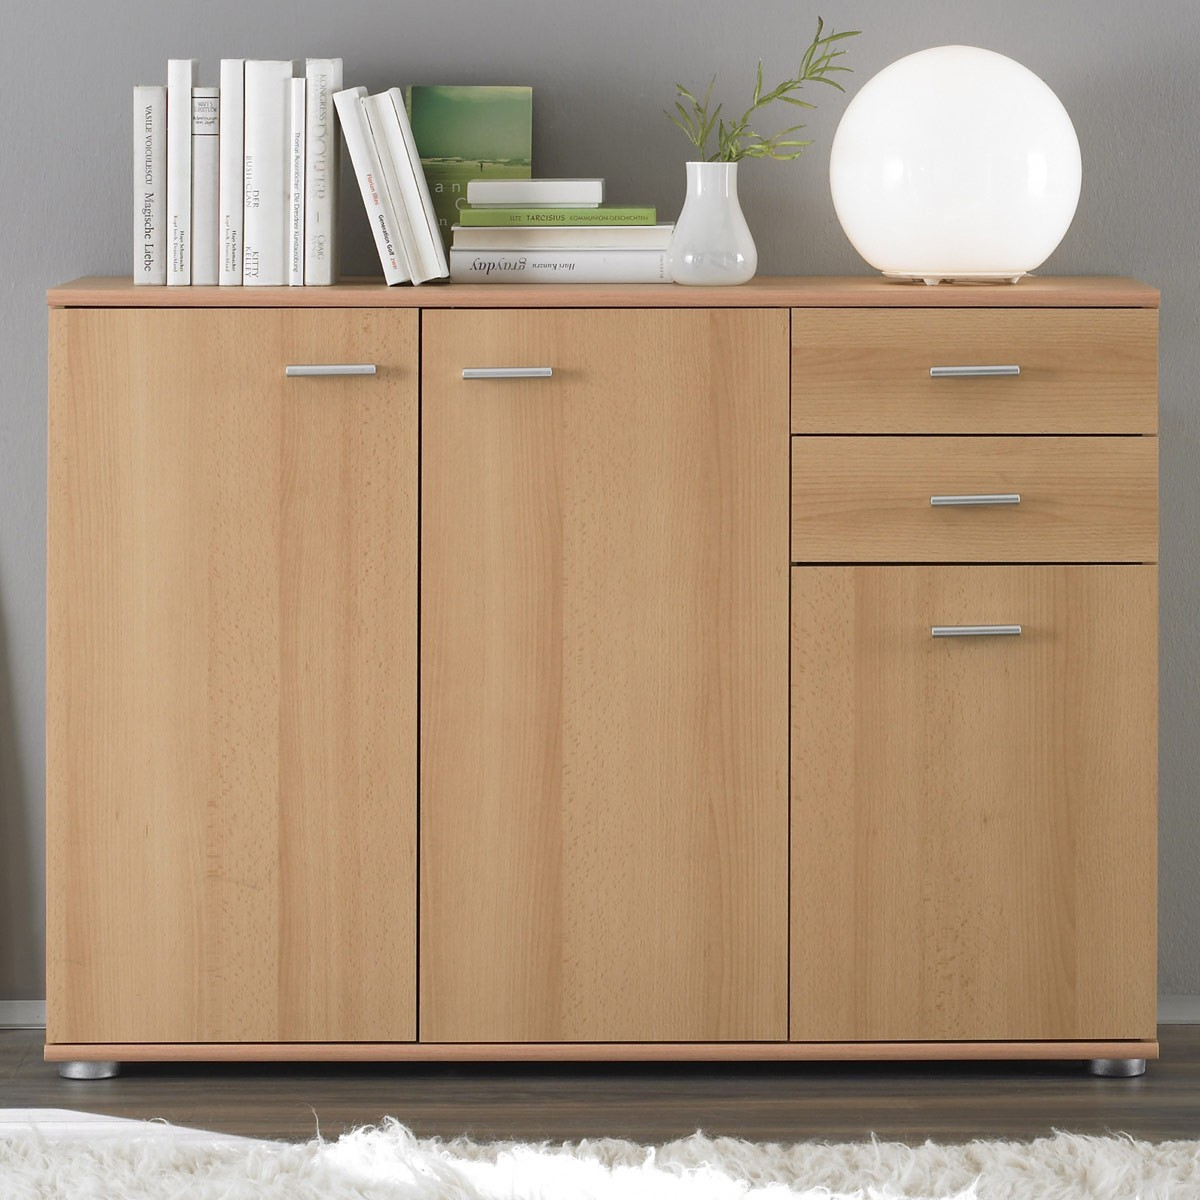 poco sideboard kommode interessante ideen f r die gestaltung eines raumes in. Black Bedroom Furniture Sets. Home Design Ideas